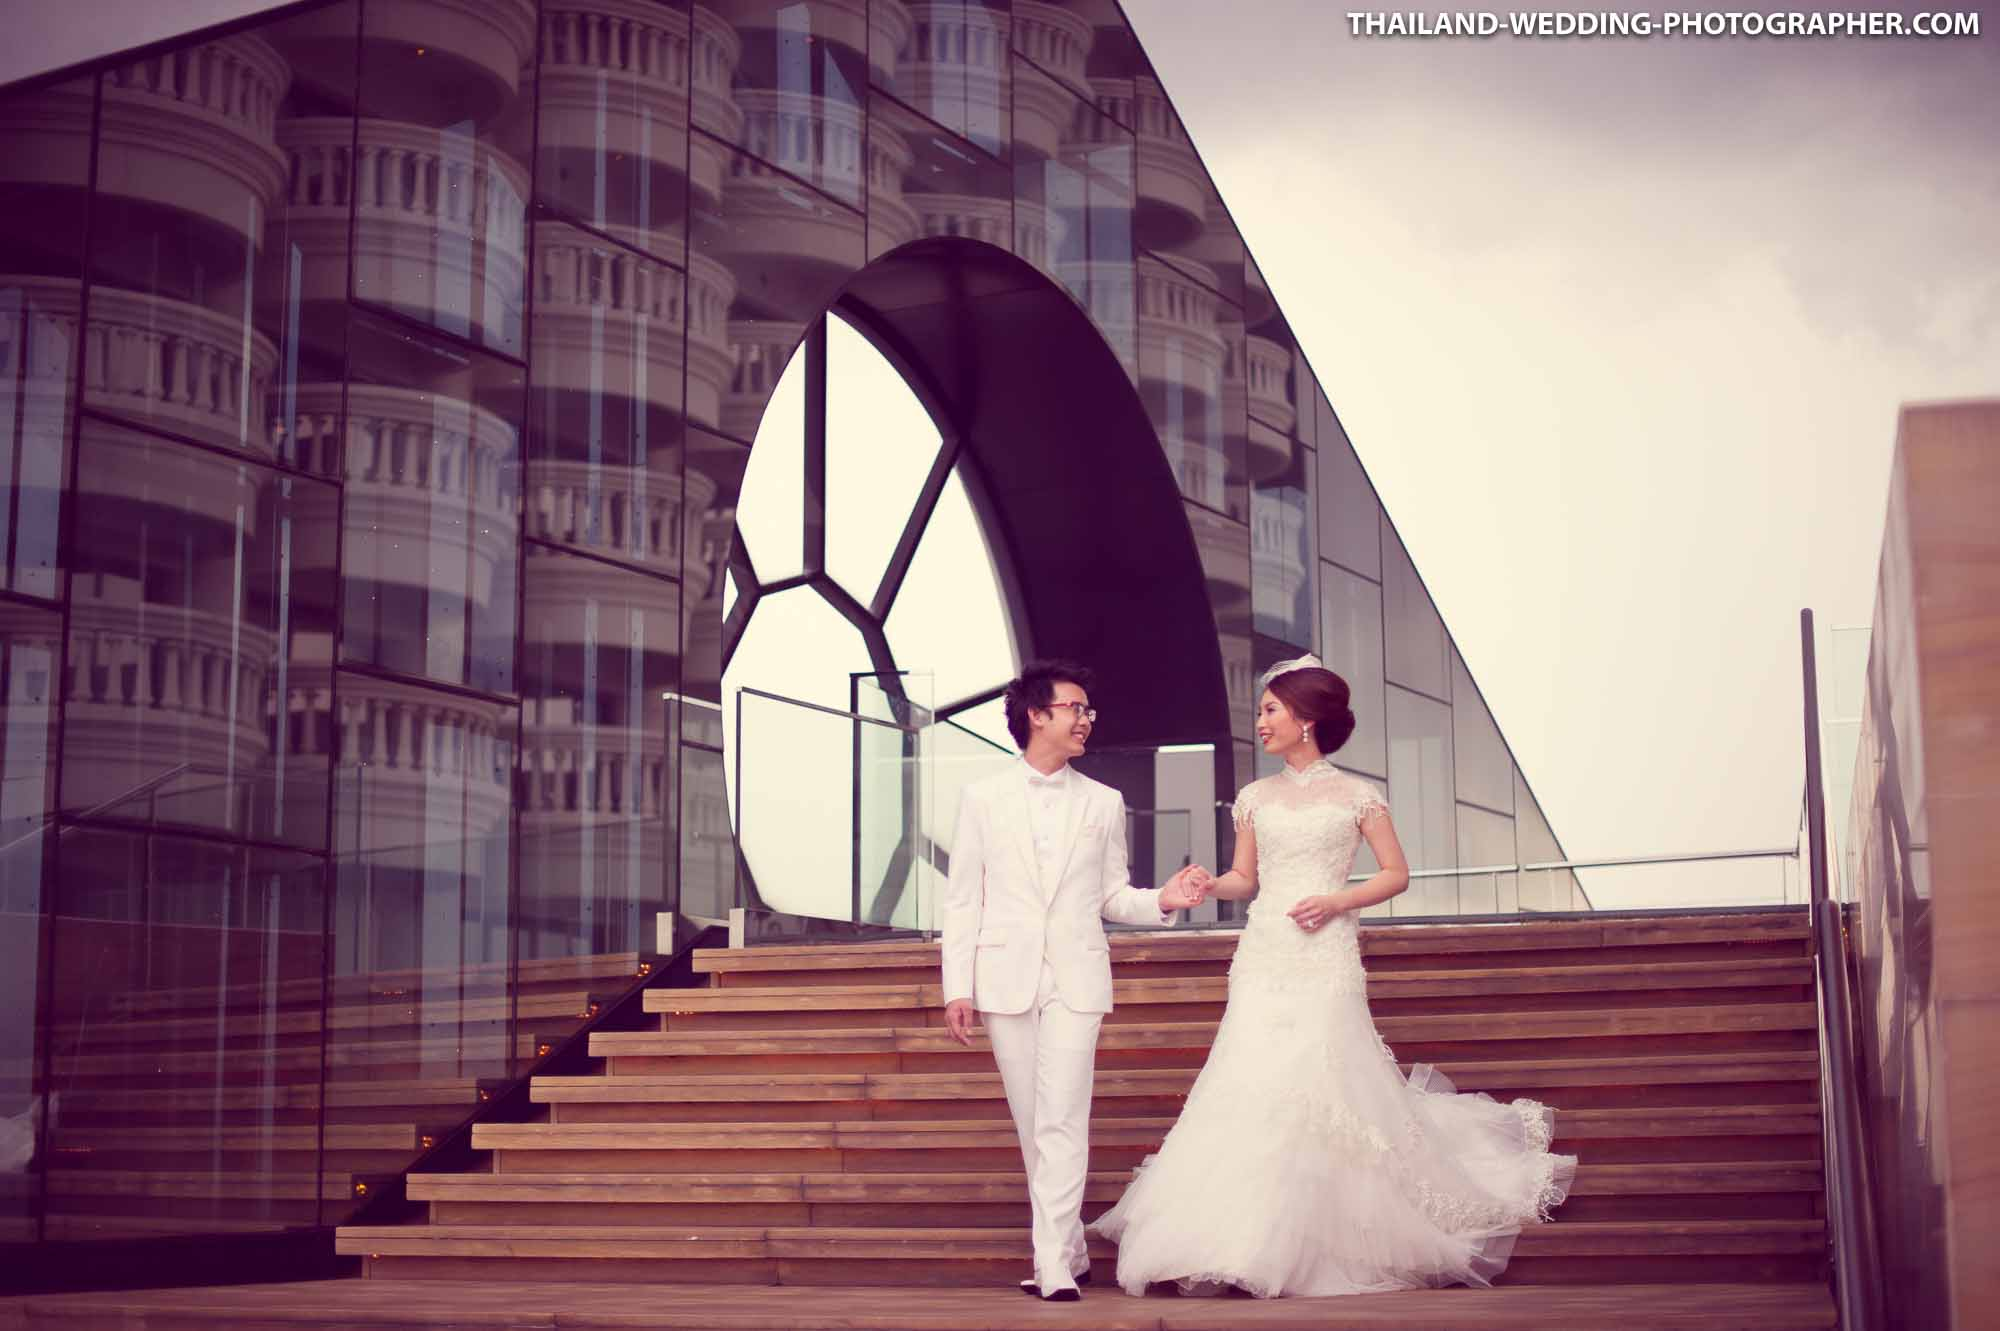 lebua at state tower thailand wedding photographer